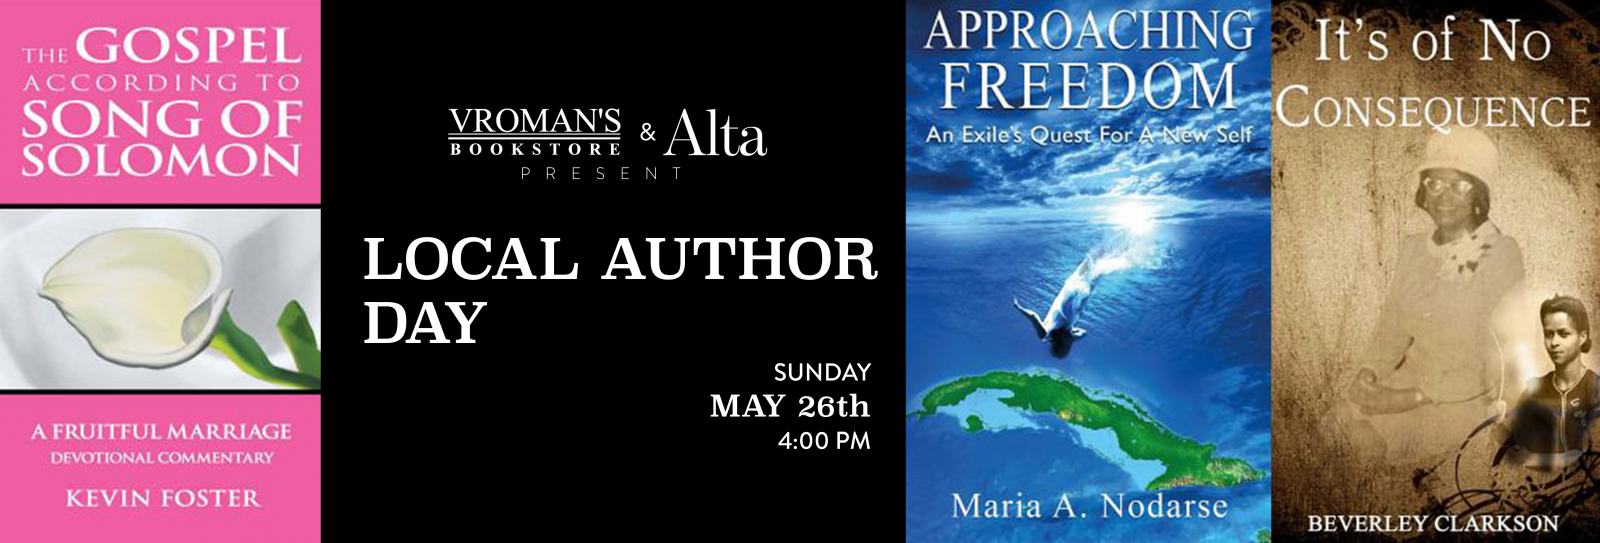 Vroman's Local Author Day  Sunday May 26th at 4pm